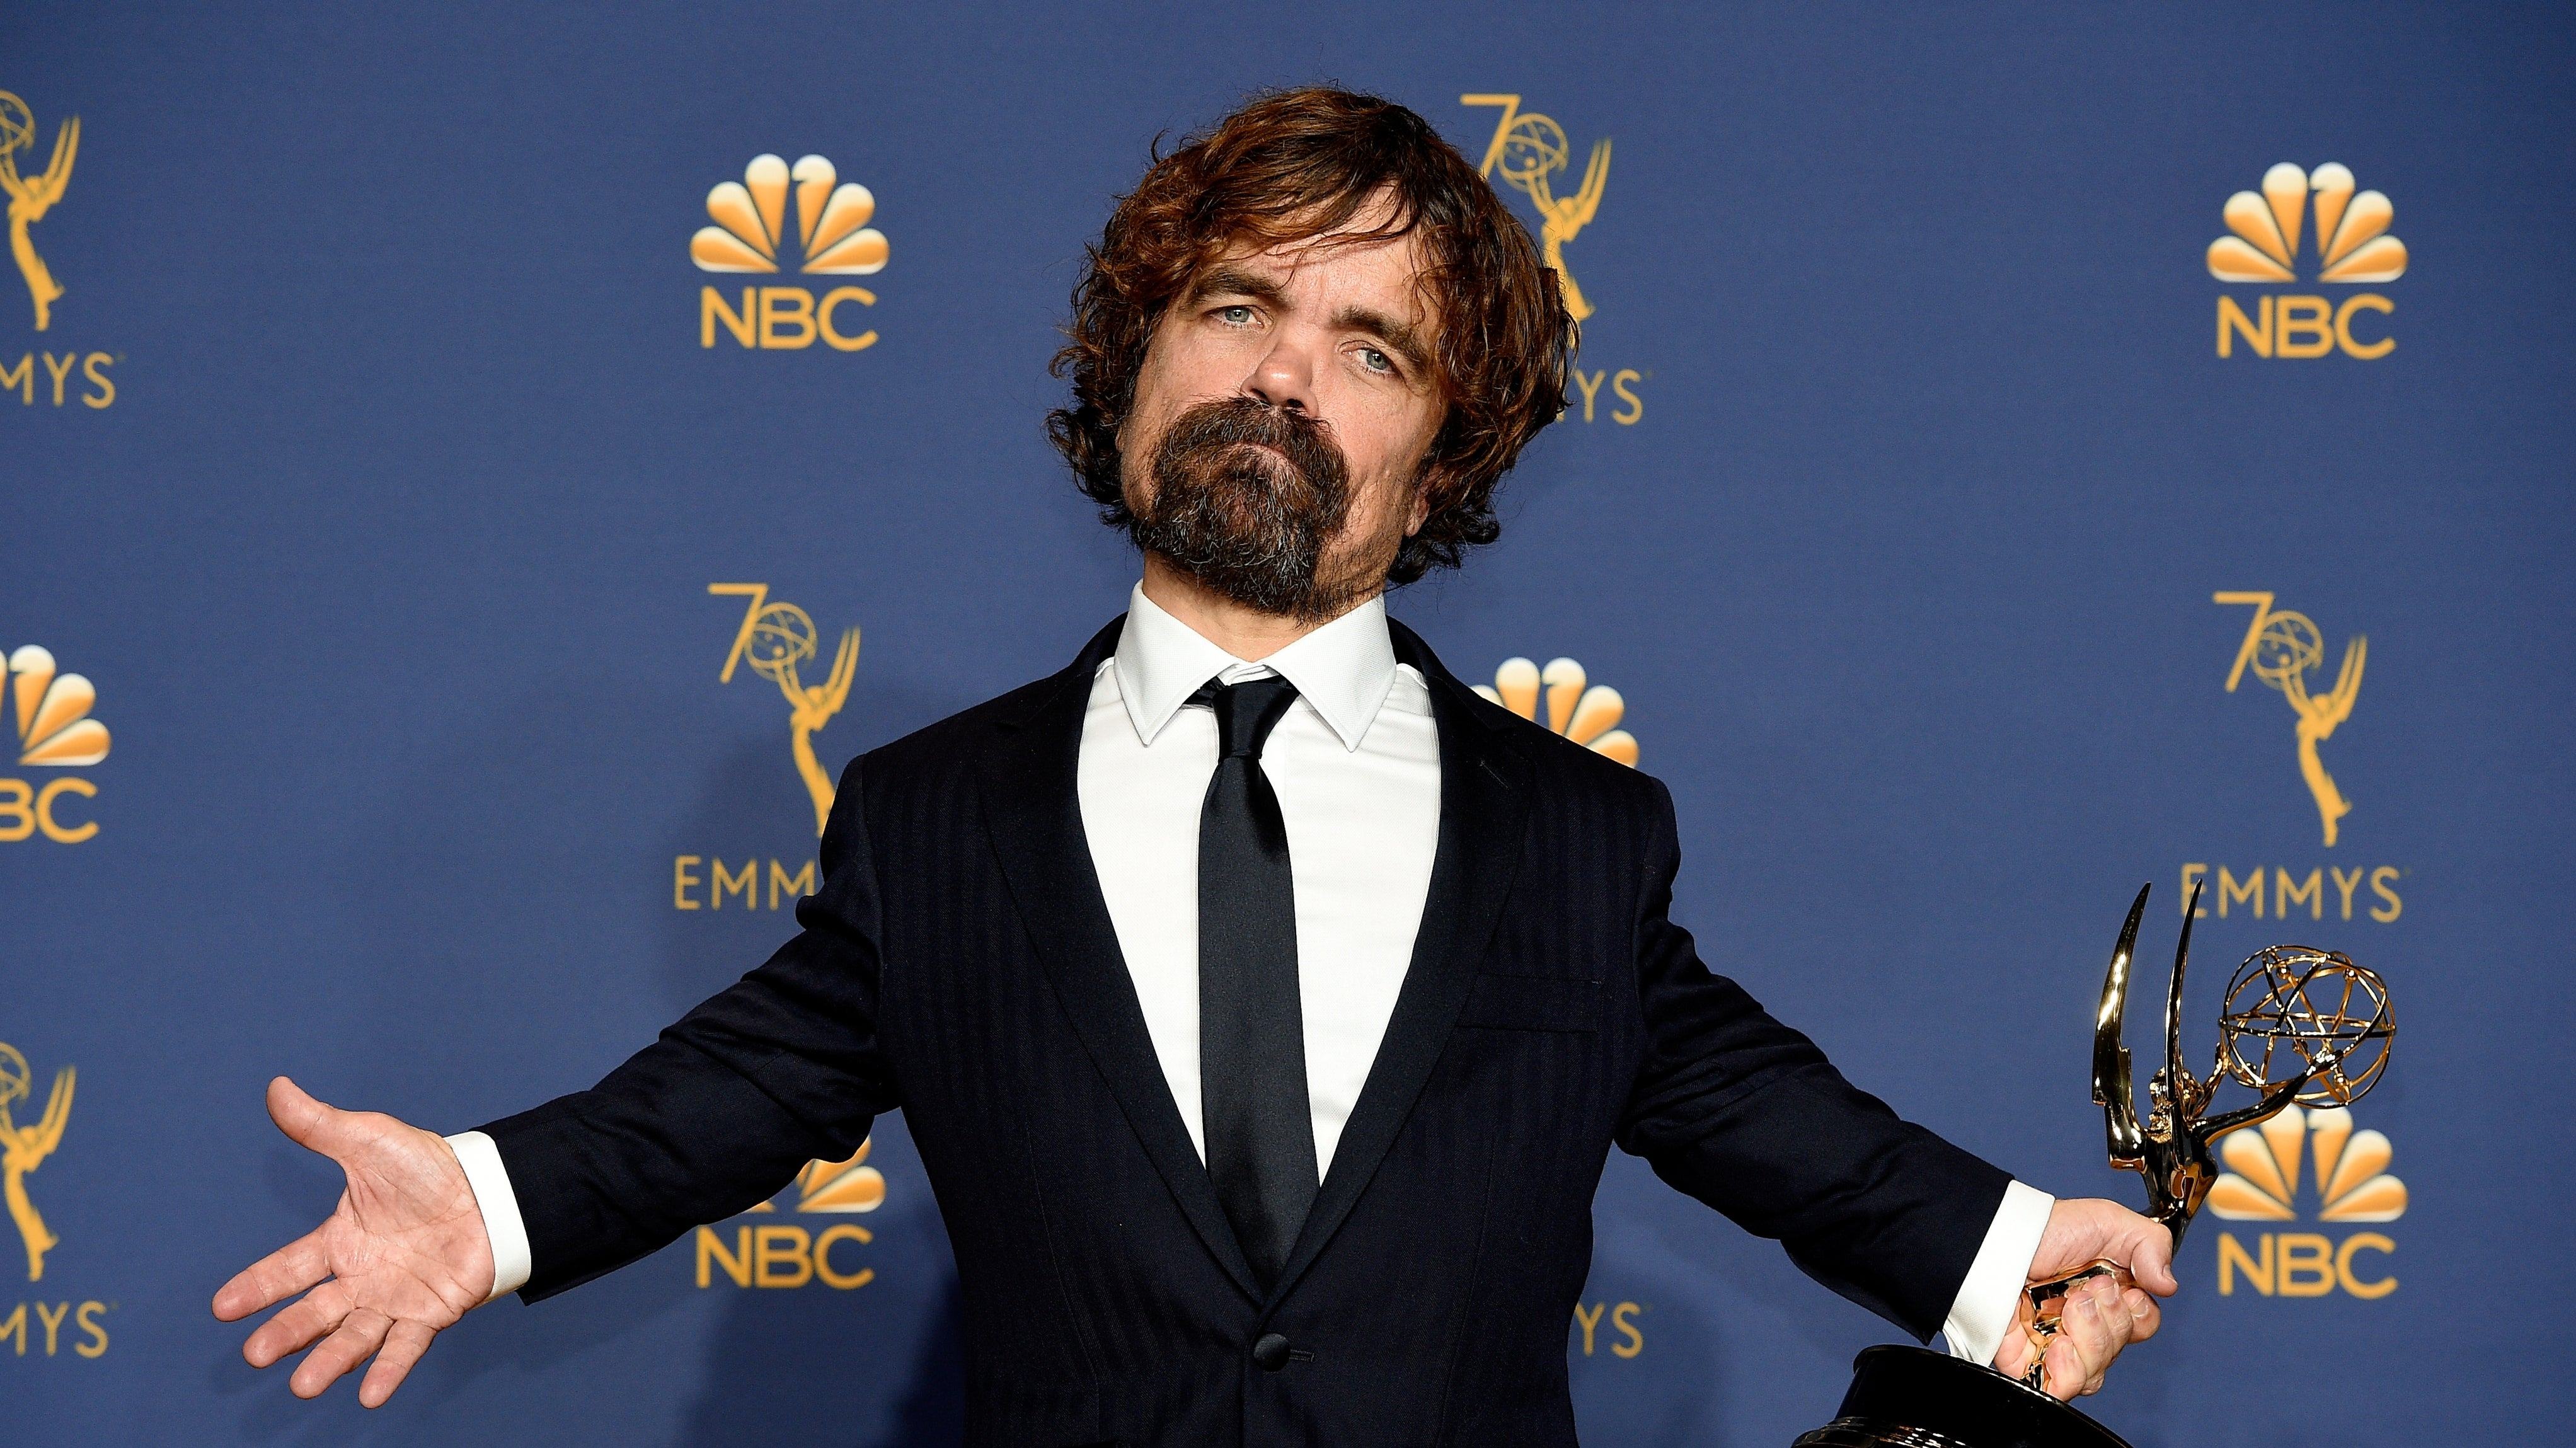 Emmys 2019: Watch ET Live on the Red Carpet